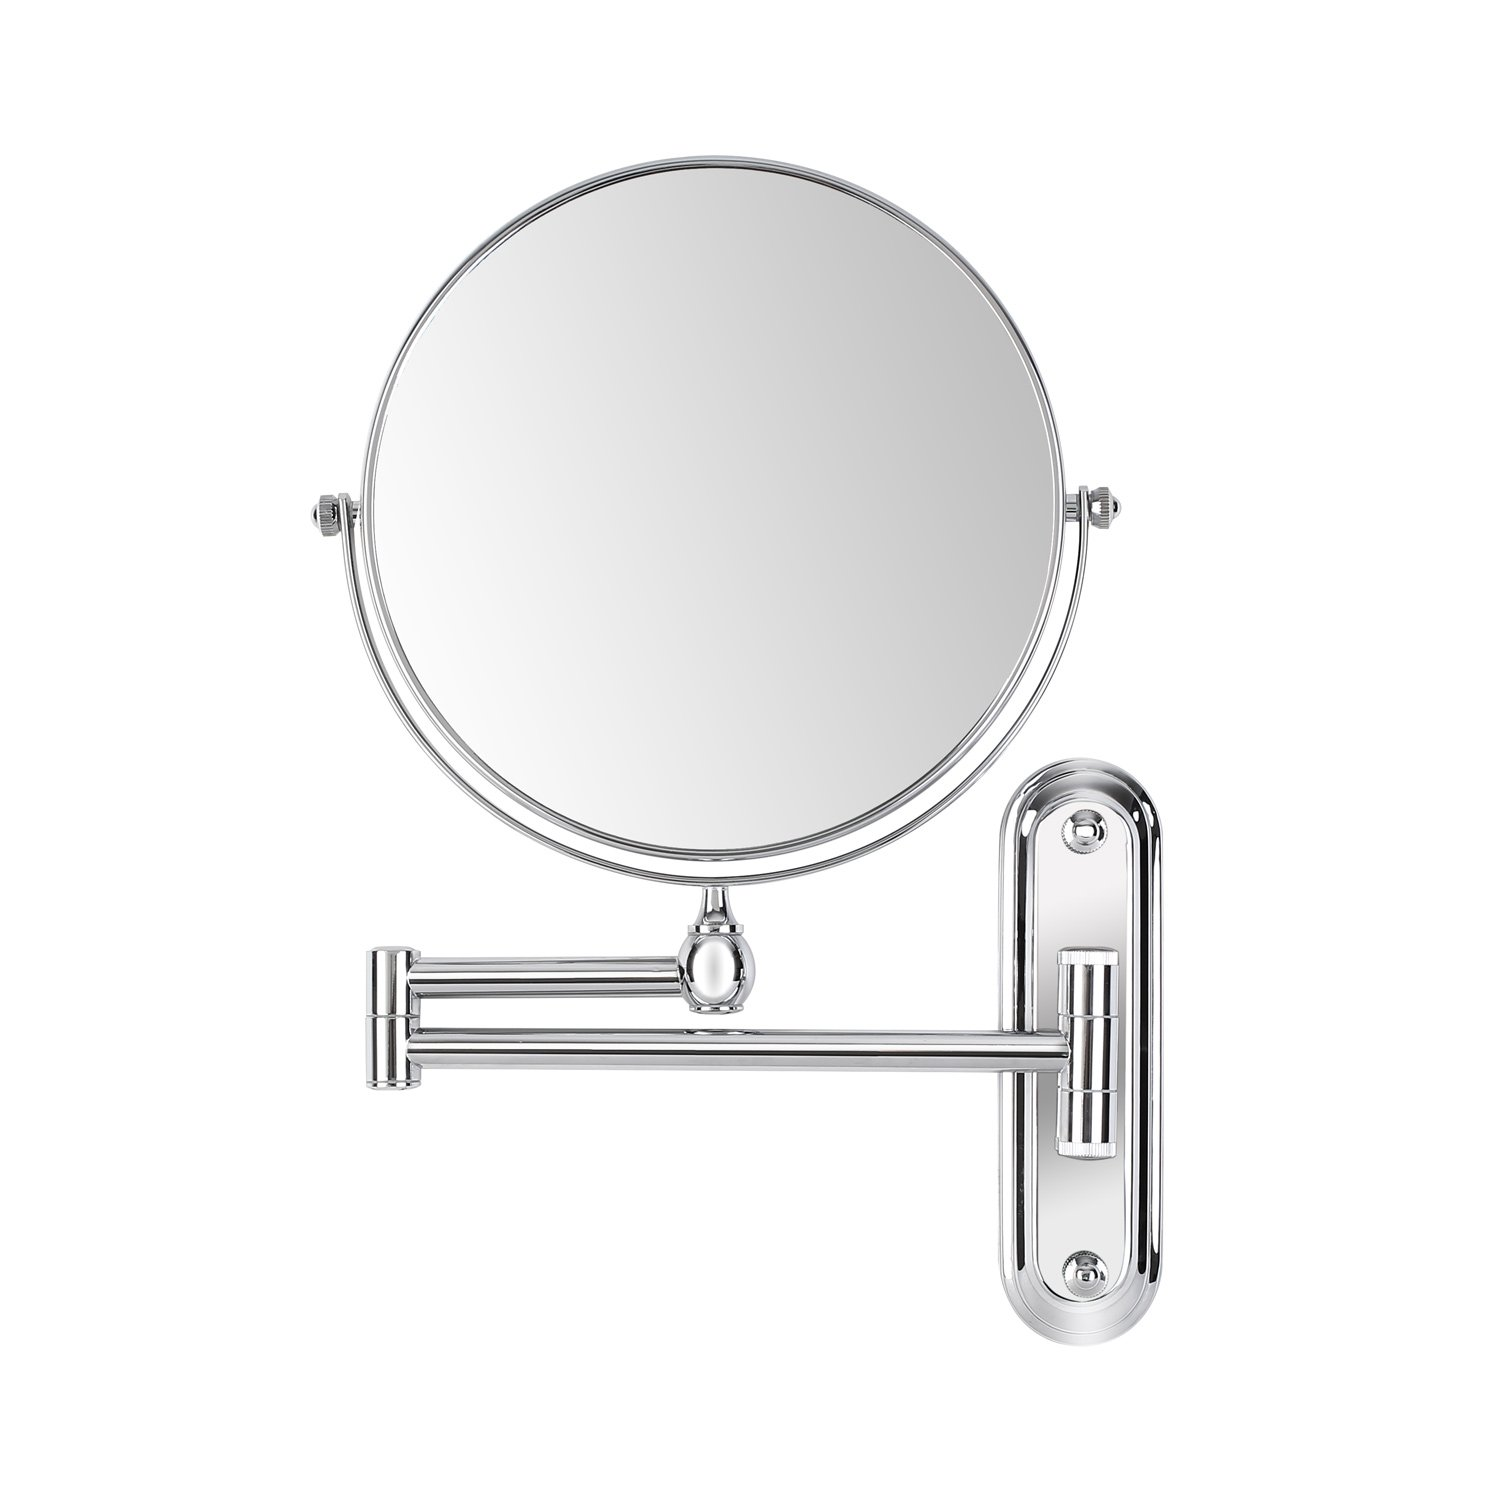 FEMOR 10x/1x Magnification Makeup Mirror 8 Inch Wall Mounted Bathroom Mirror Double-sided Vanity Swivel Mirror, Extendable and Chrome Finished